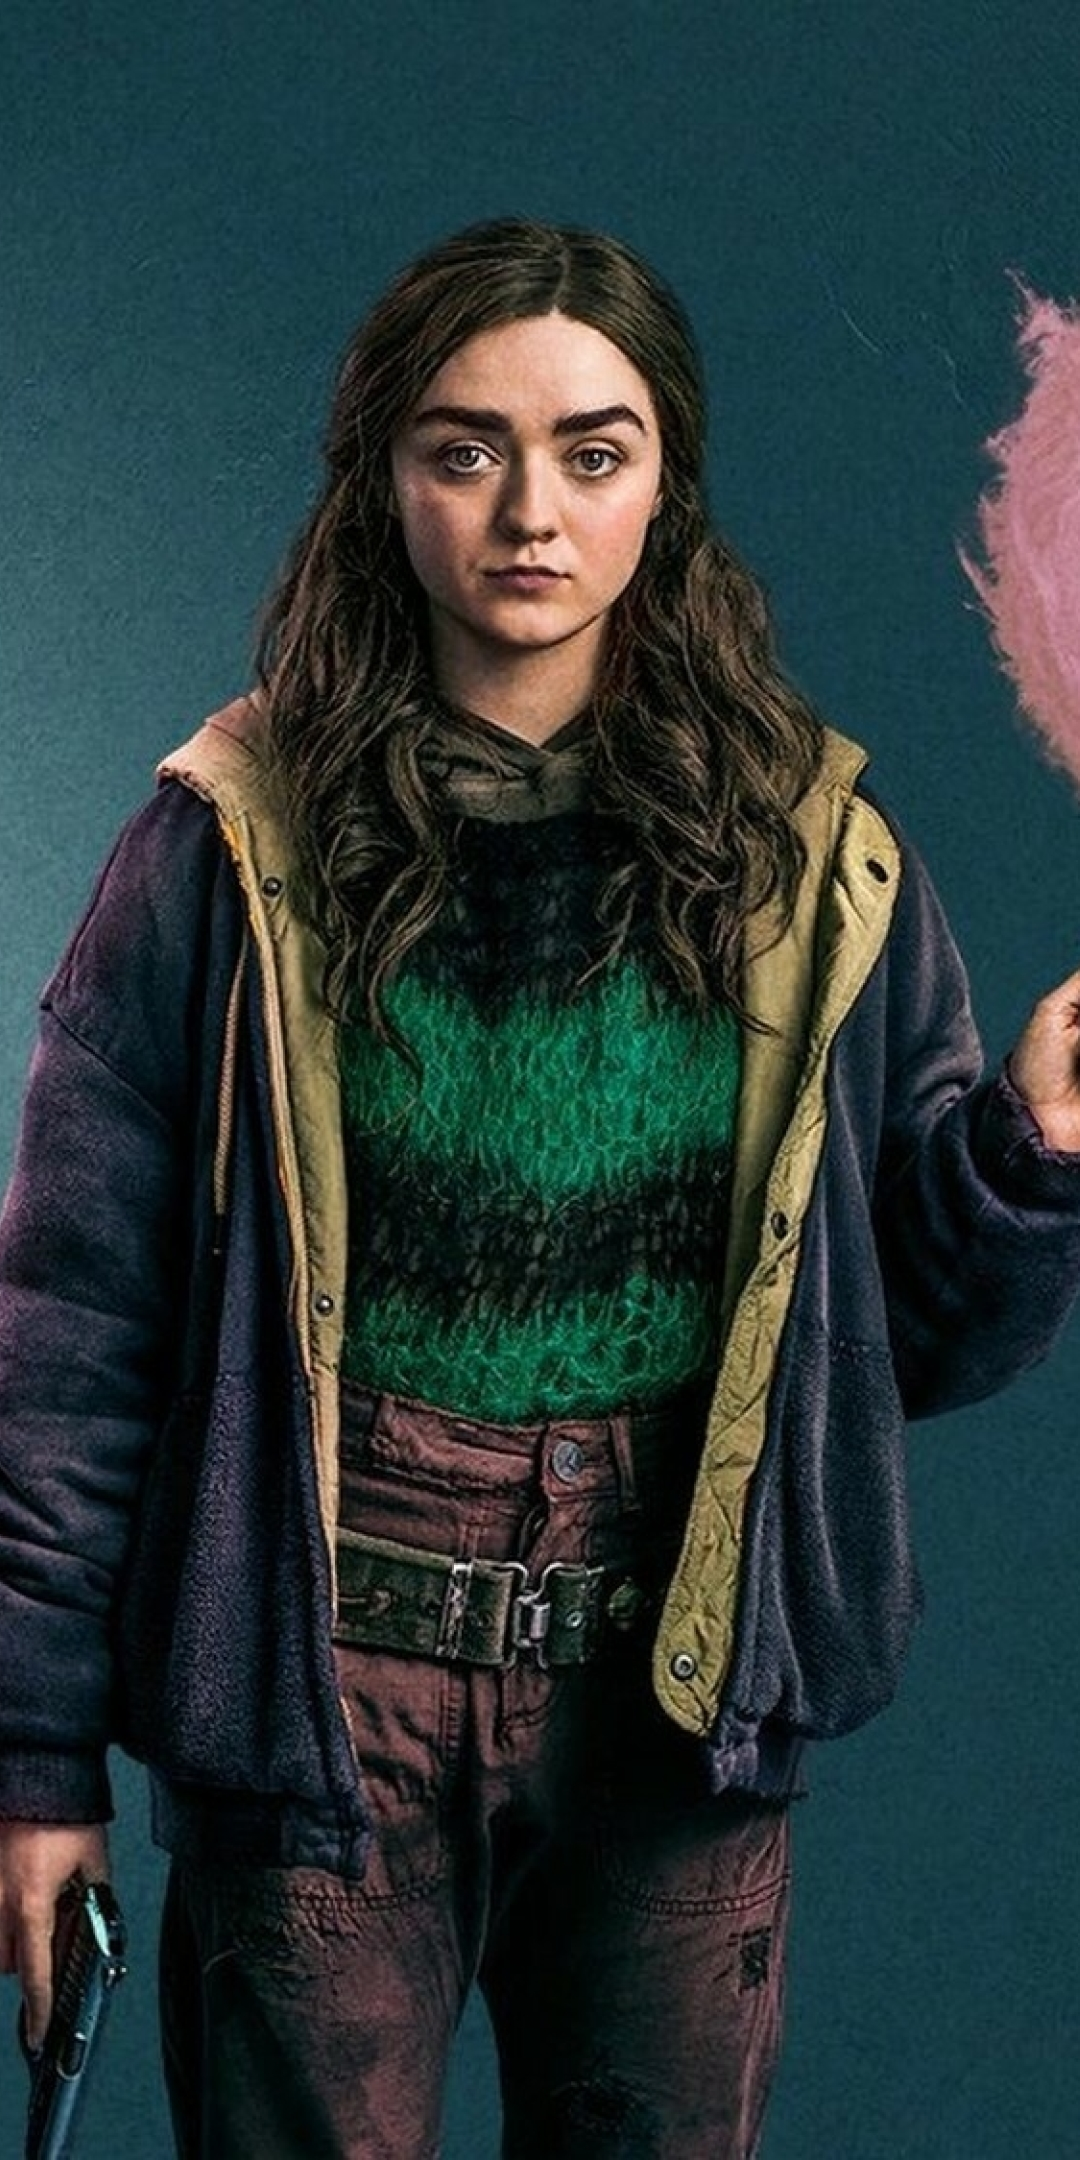 Maisie Williams Two Weeks To Live Wallpaper in 1080x2160 Resolution